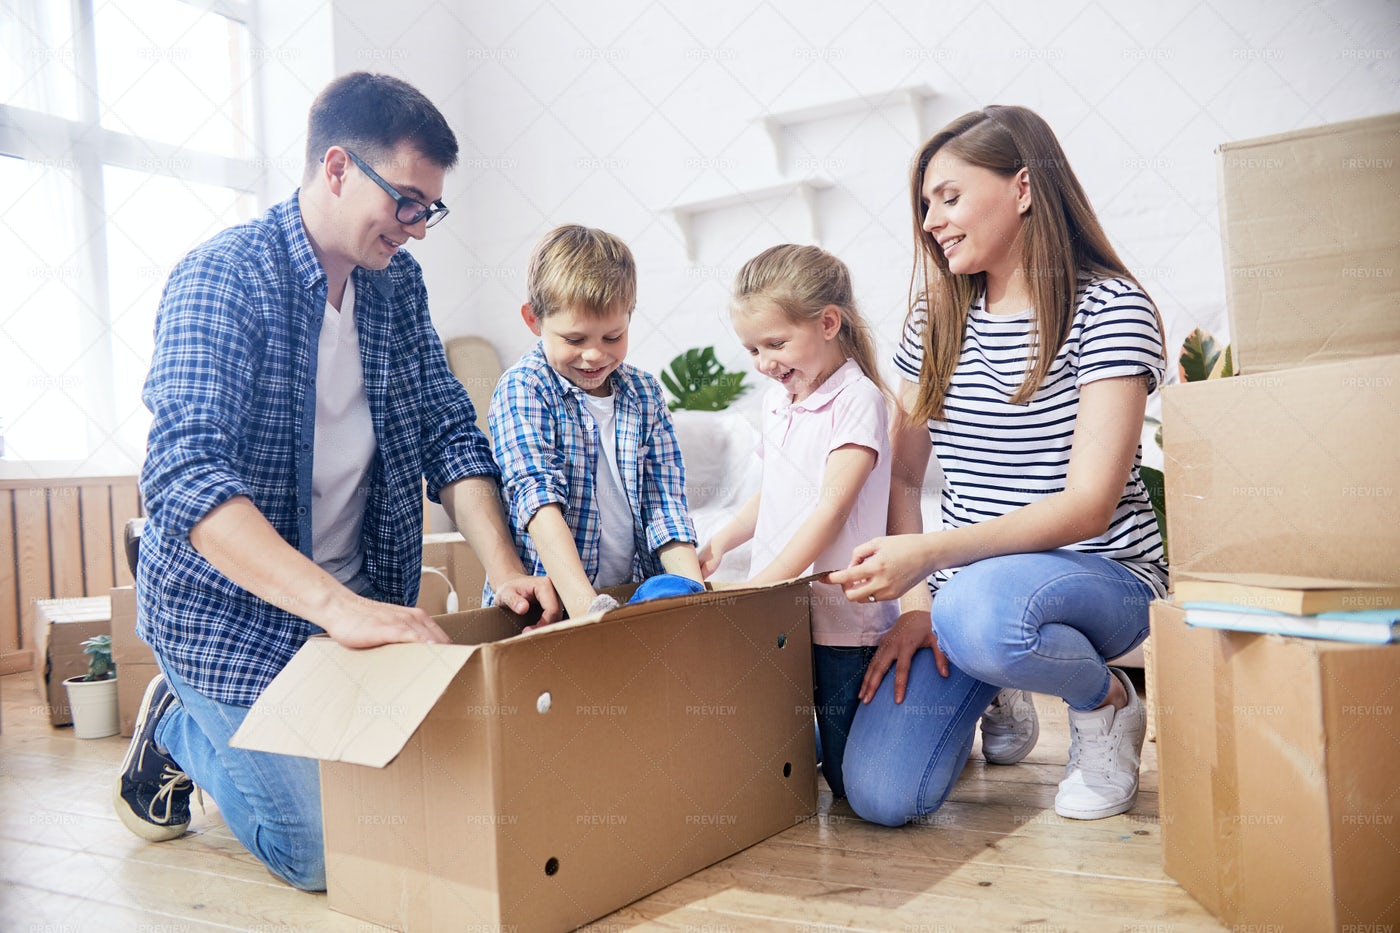 Unpacking Moving Boxes...: Stock Photos